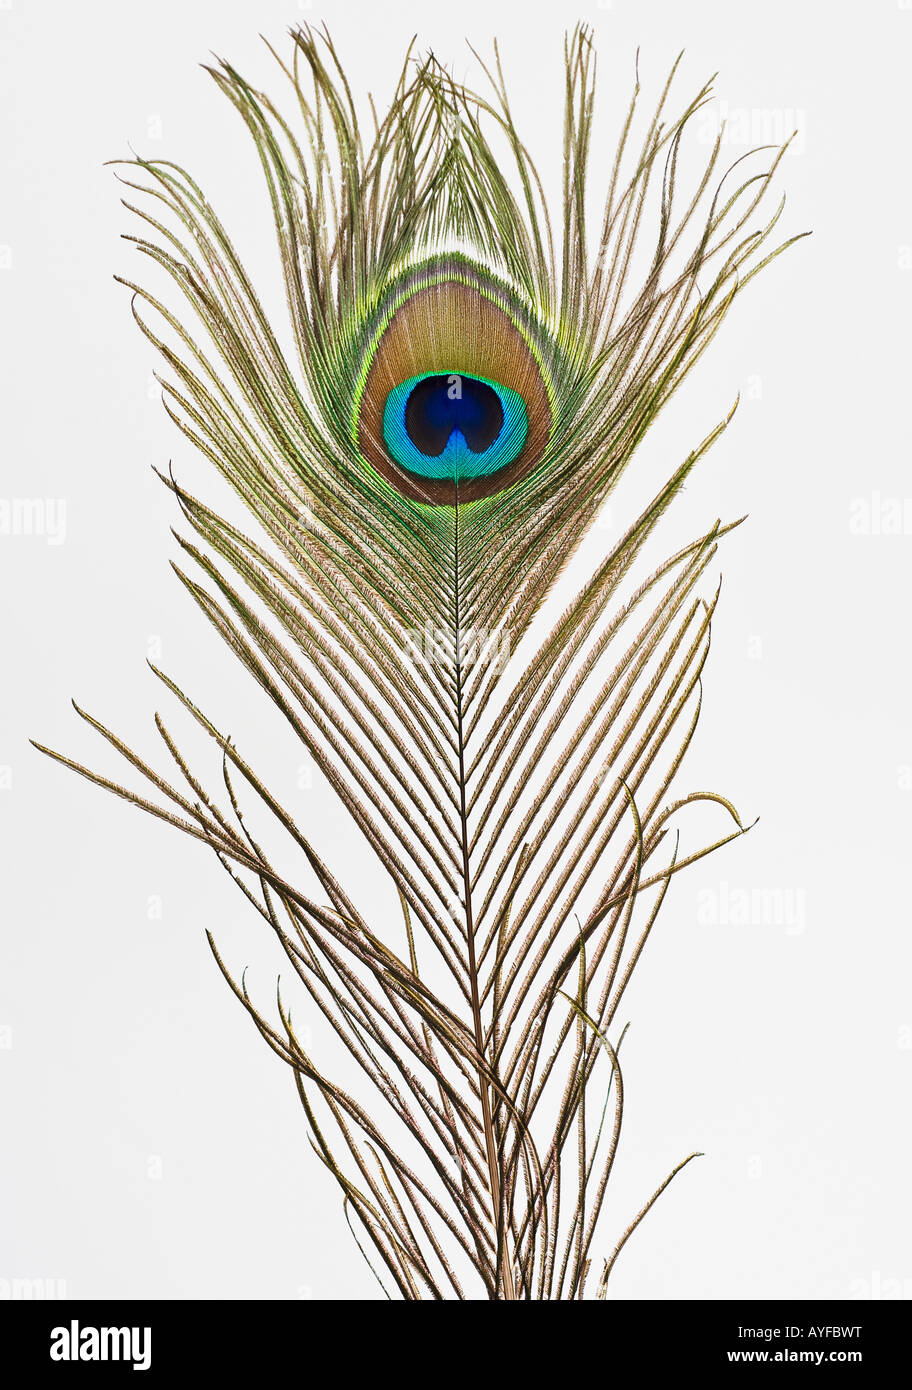 Close up of peacock feather Stock Photo